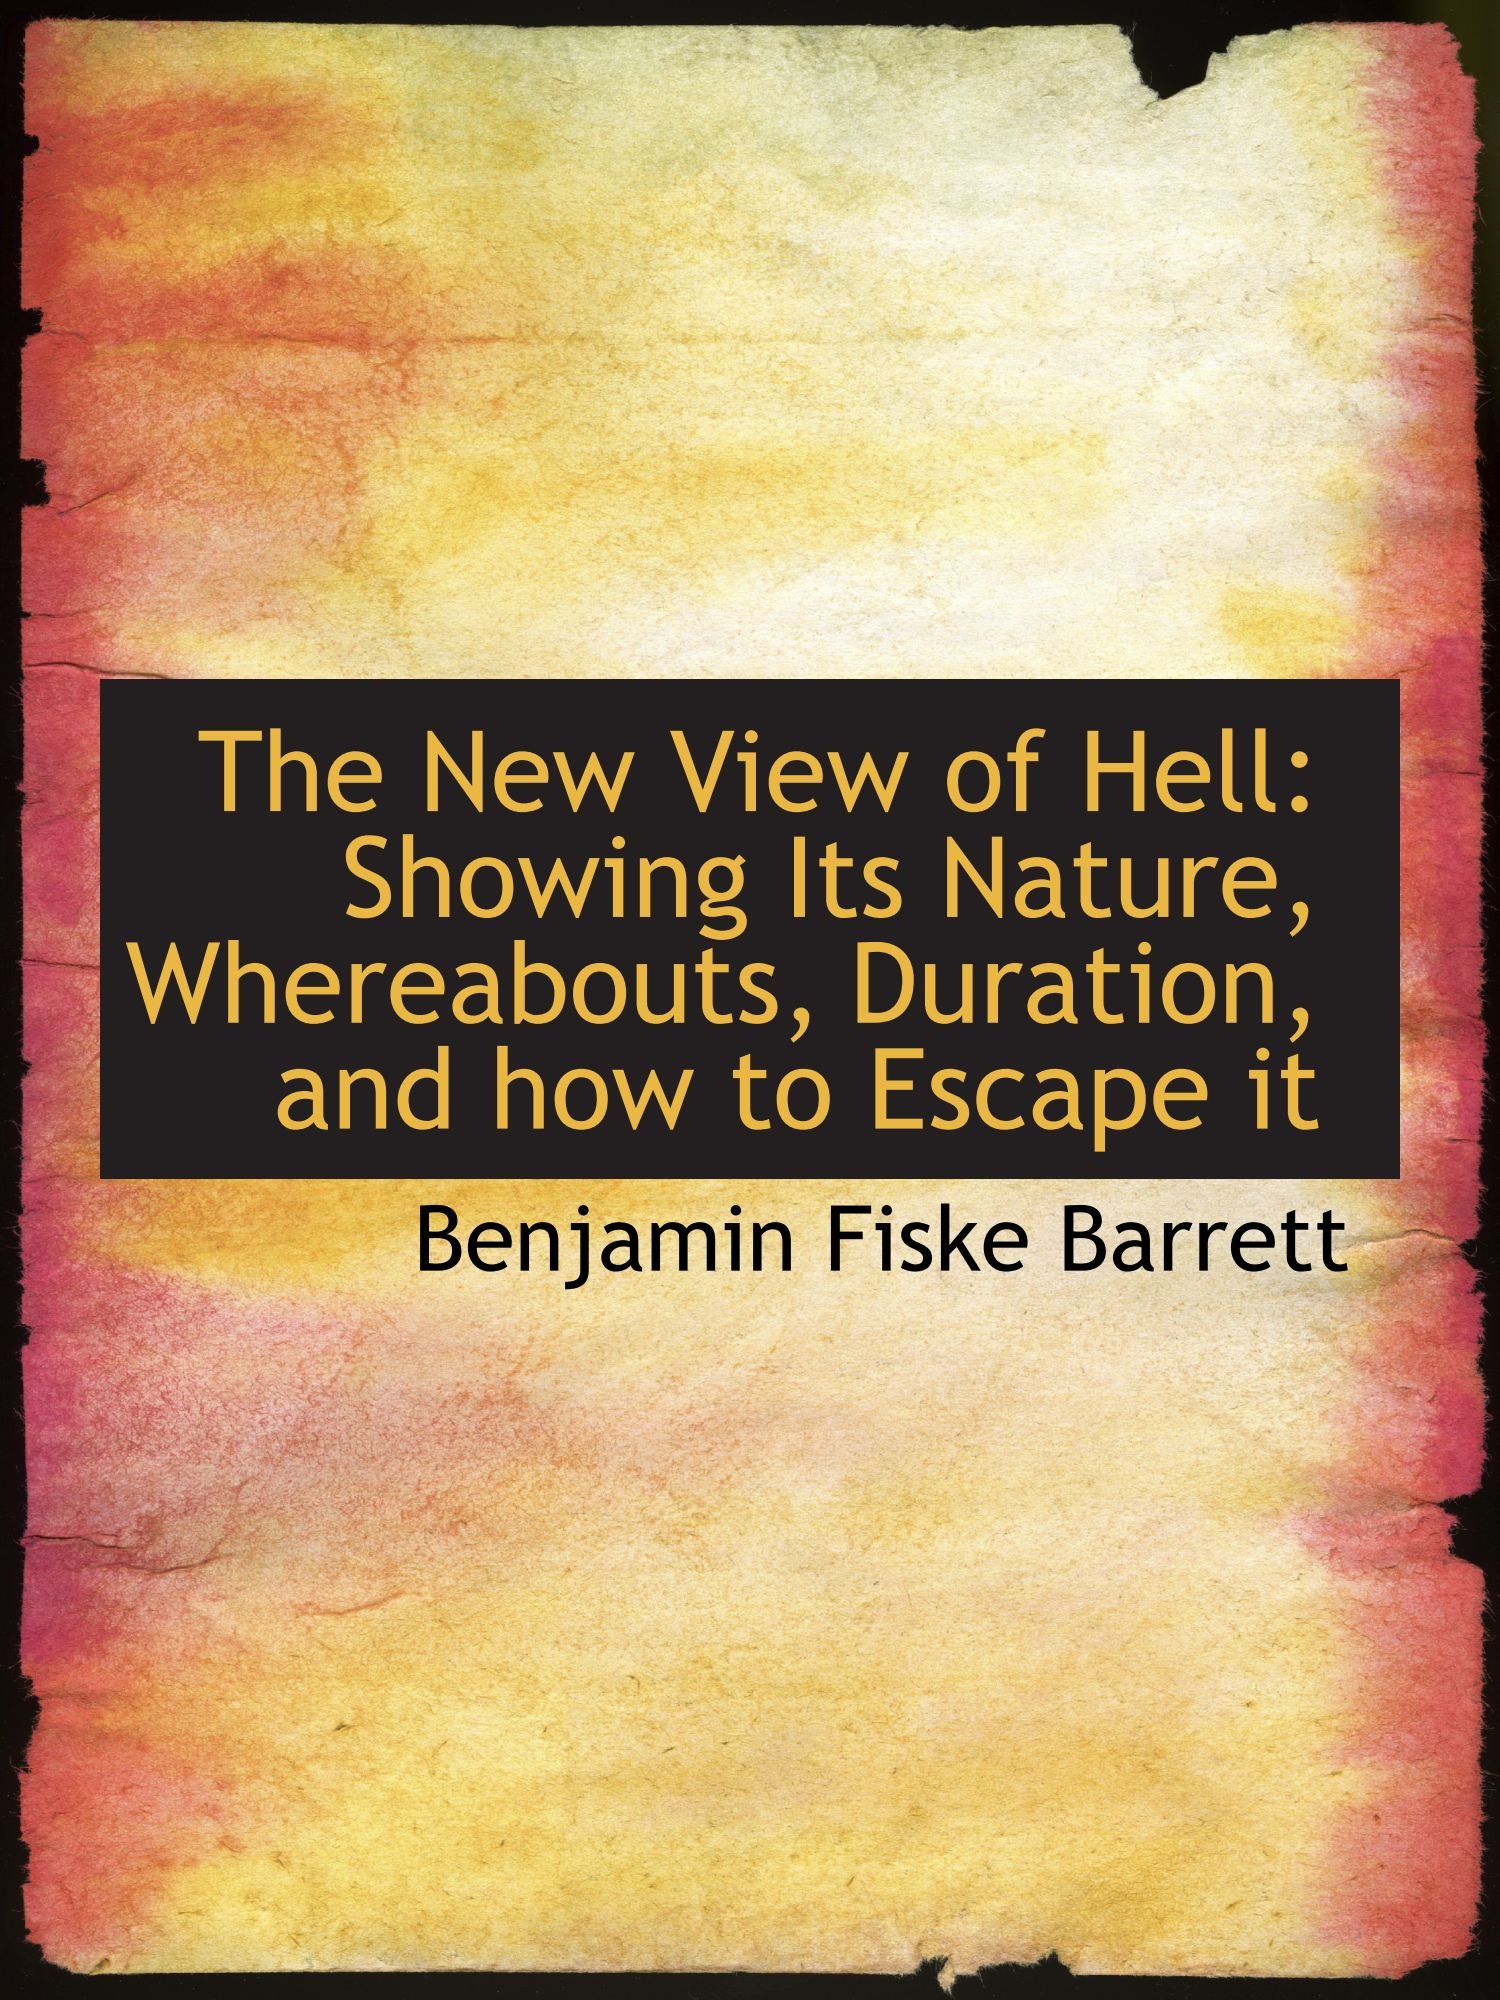 The New View of Hell: Showing Its Nature, Whereabouts, Duration, and how to Escape it pdf epub